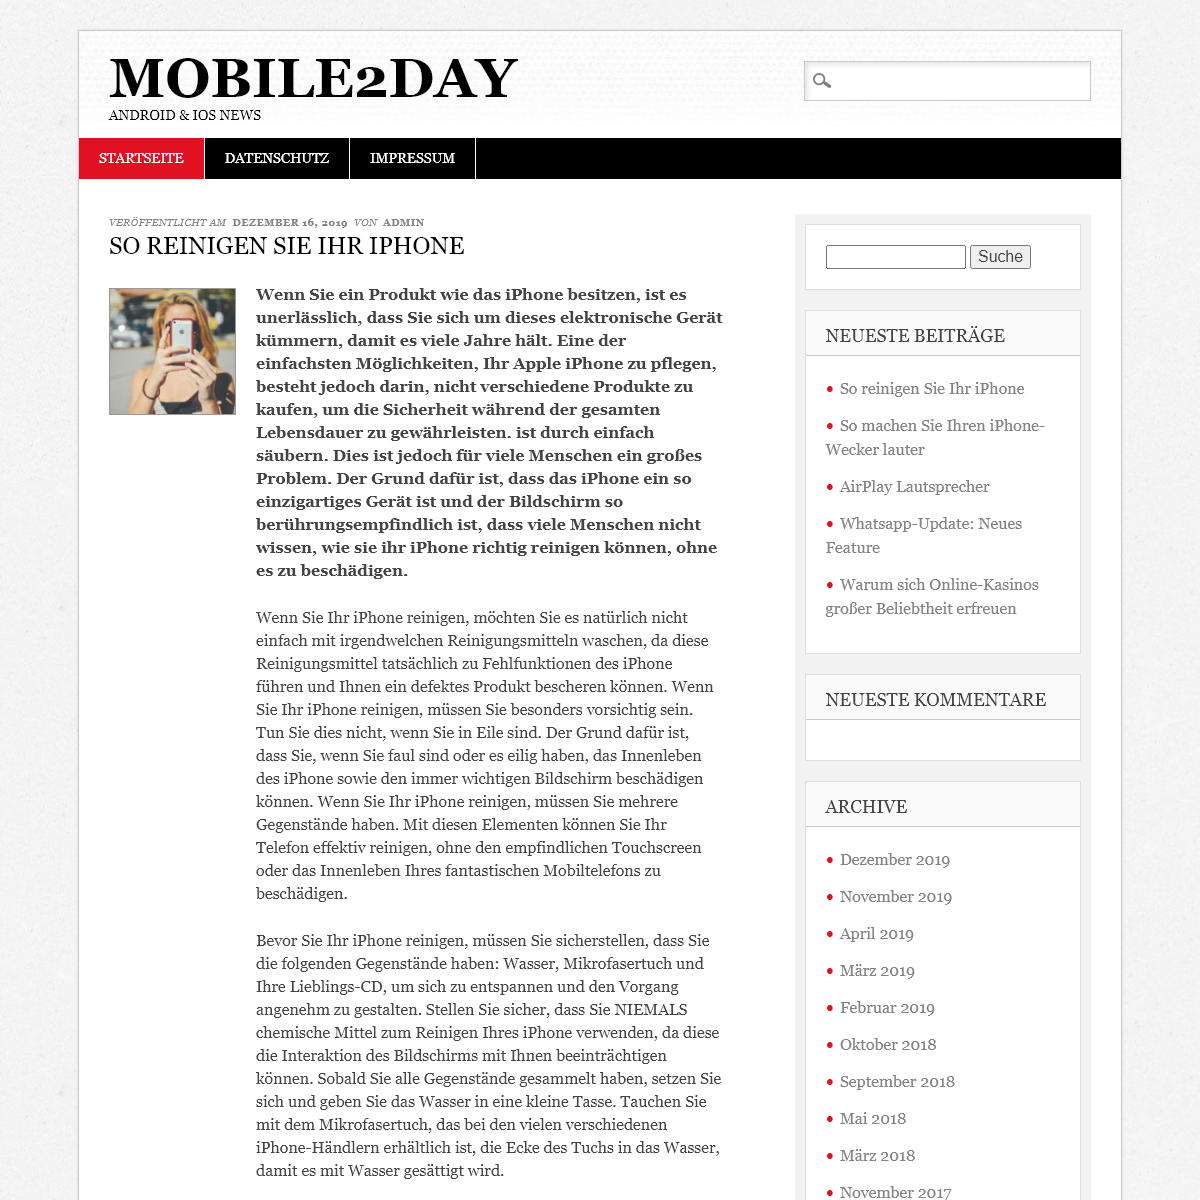 mobile2day – Android & iOS News